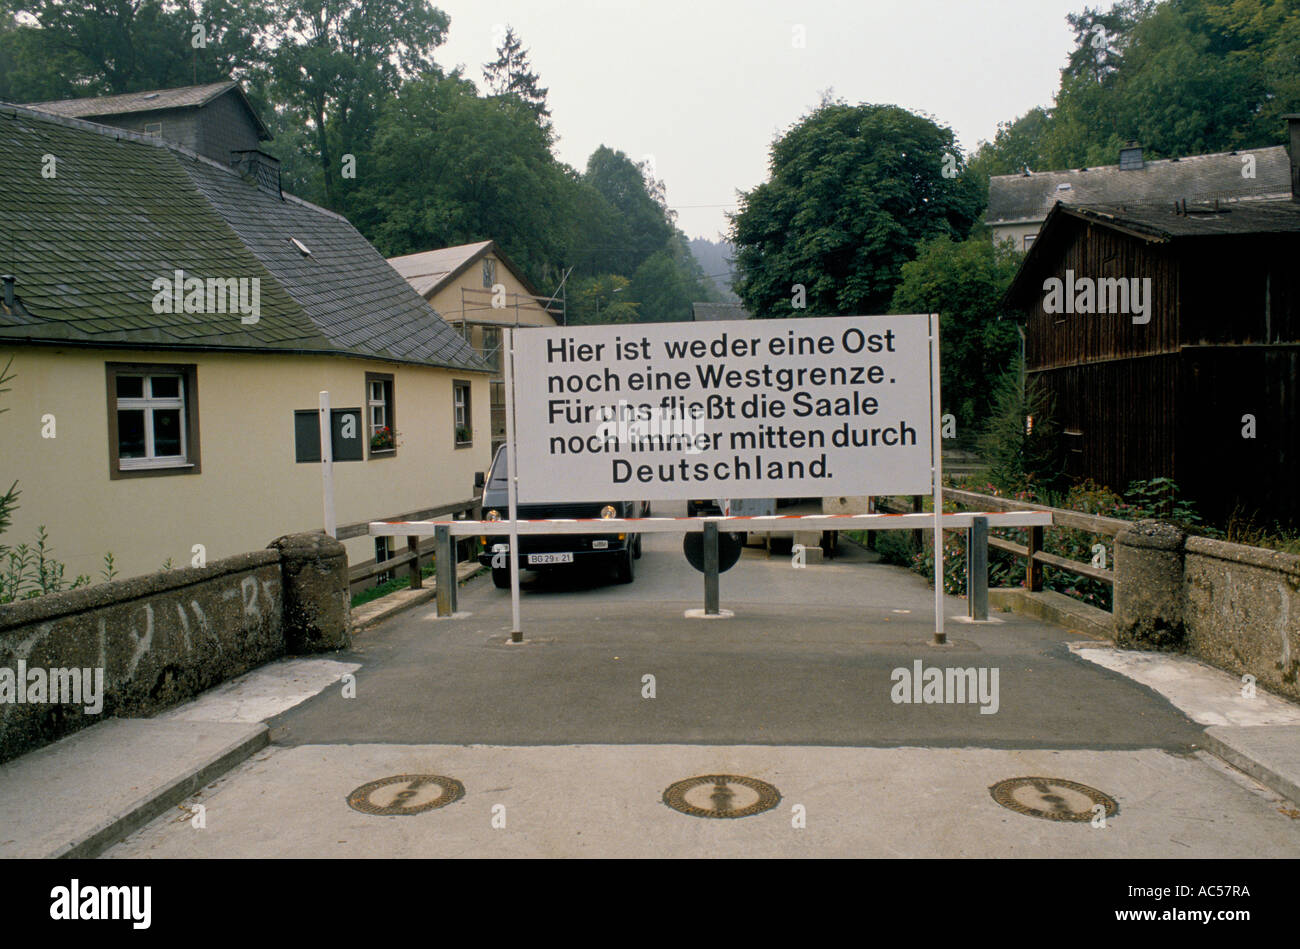 Iron curtain - Iron Curtain West To East Germany 1989 The Fall Of Communism East German Border Crossing